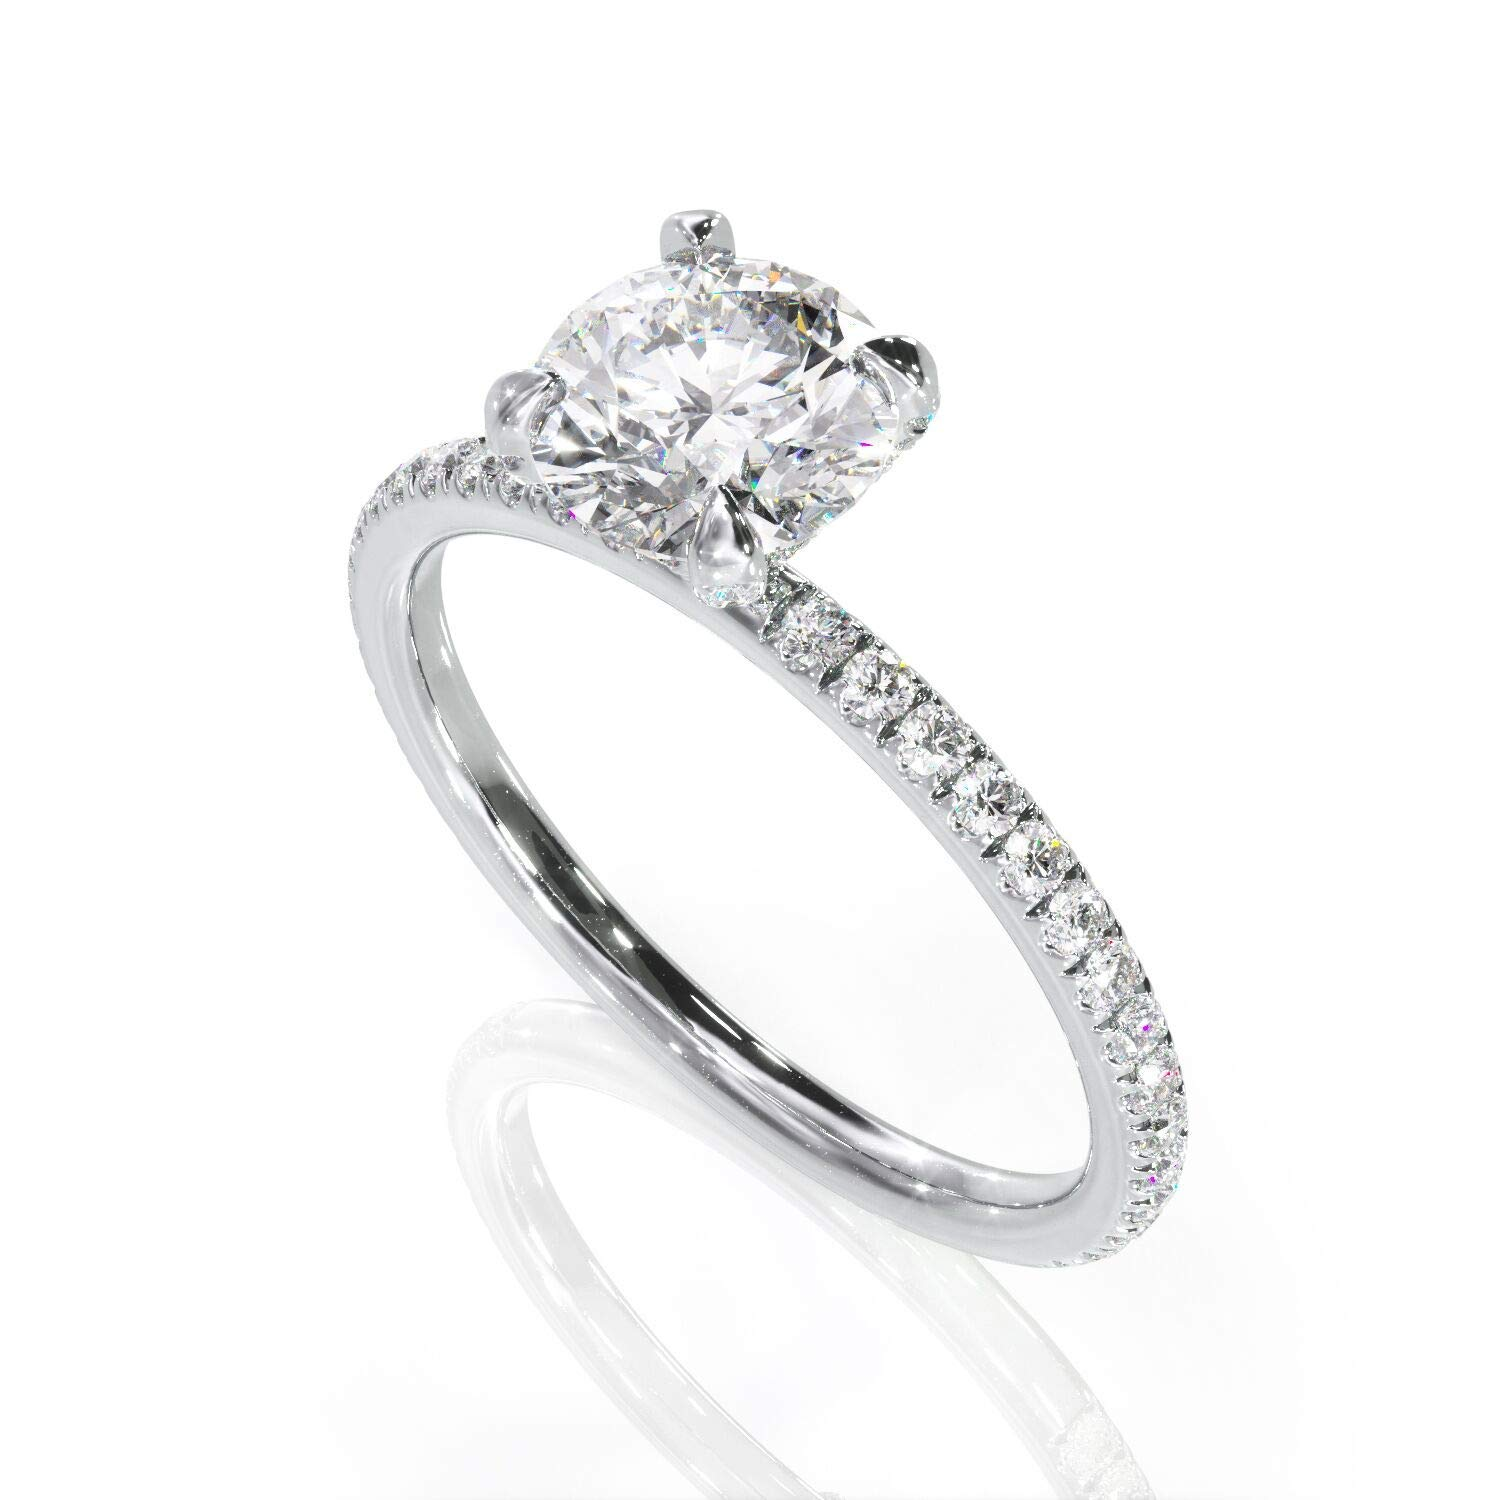 Pave Solid Gold Handcrafted Thin Solitaire KEYZAR Dainty Engagement 1 ct Lab Diamond Ring for Women